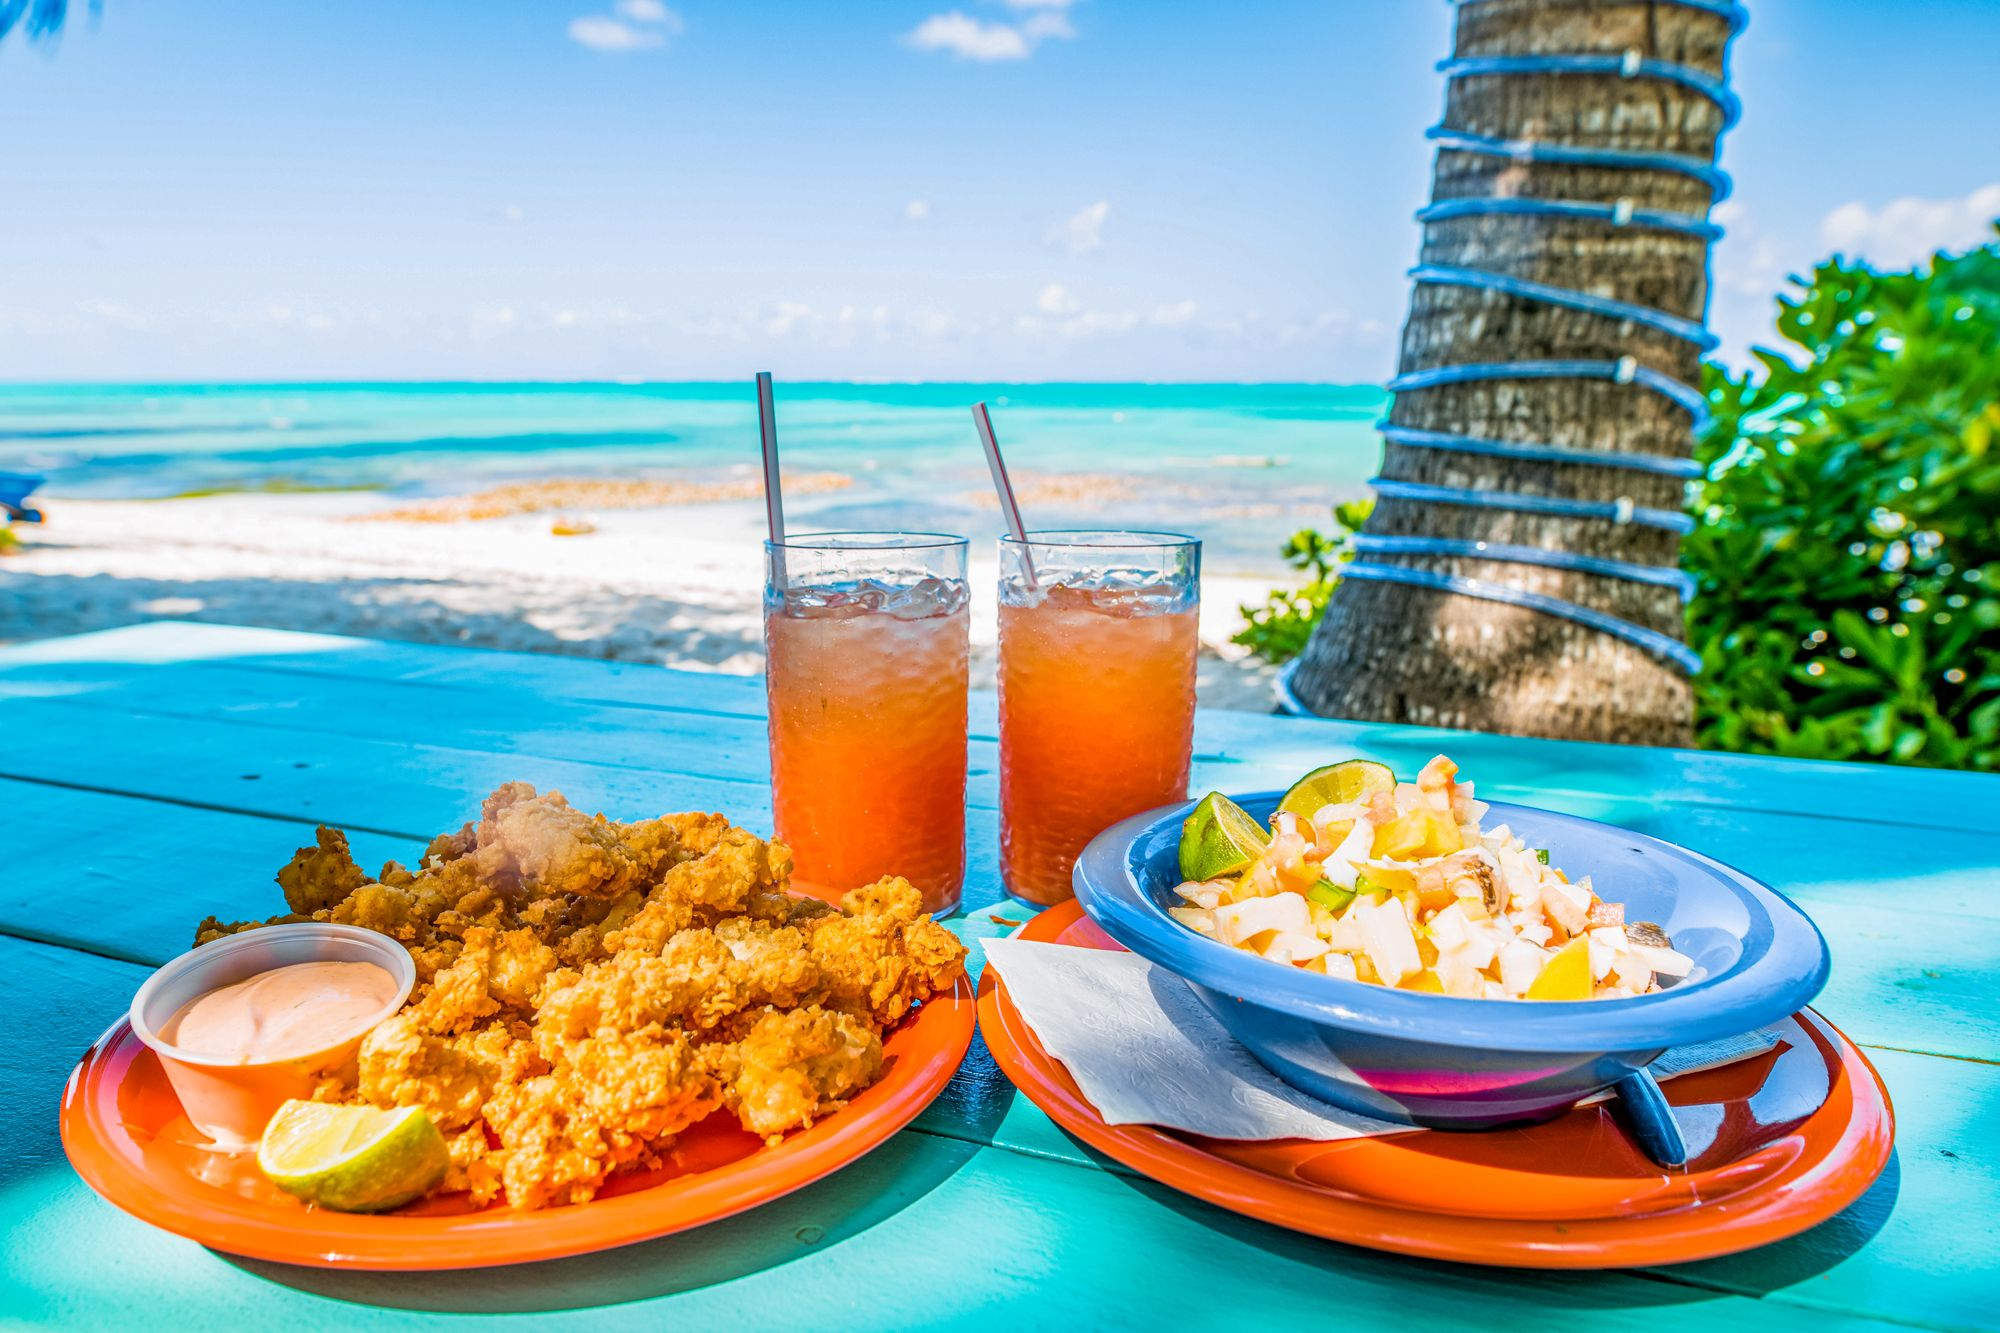 Conch fritters conch salad Bahamas